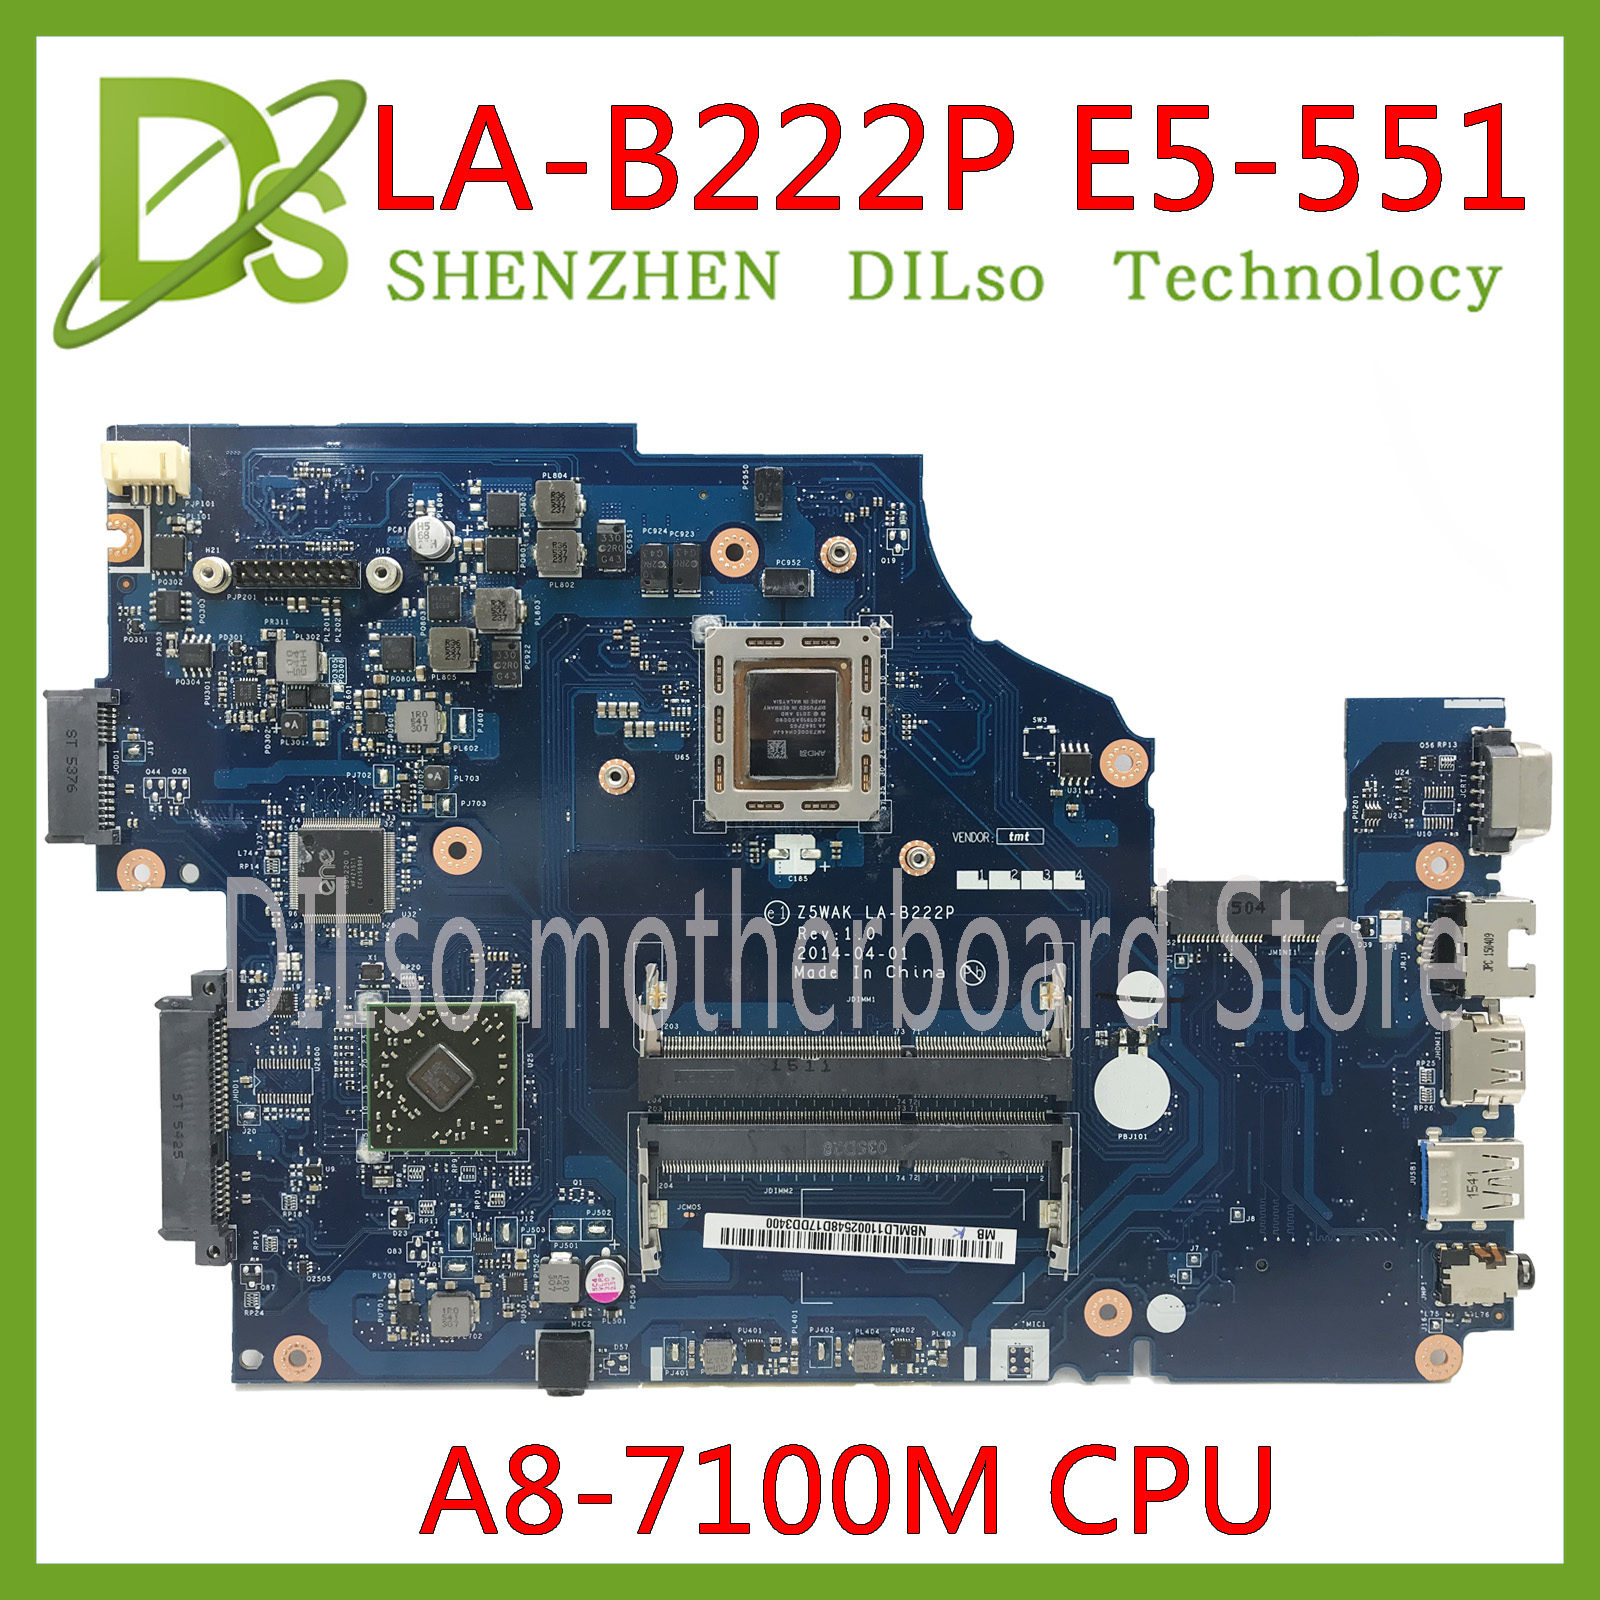 KEFU E5-551 LA-B222P Mainboard For Acer E5-551 E5-551G Laptop Motherboard  A8-7100M Z5WAK Test Work 100% Original